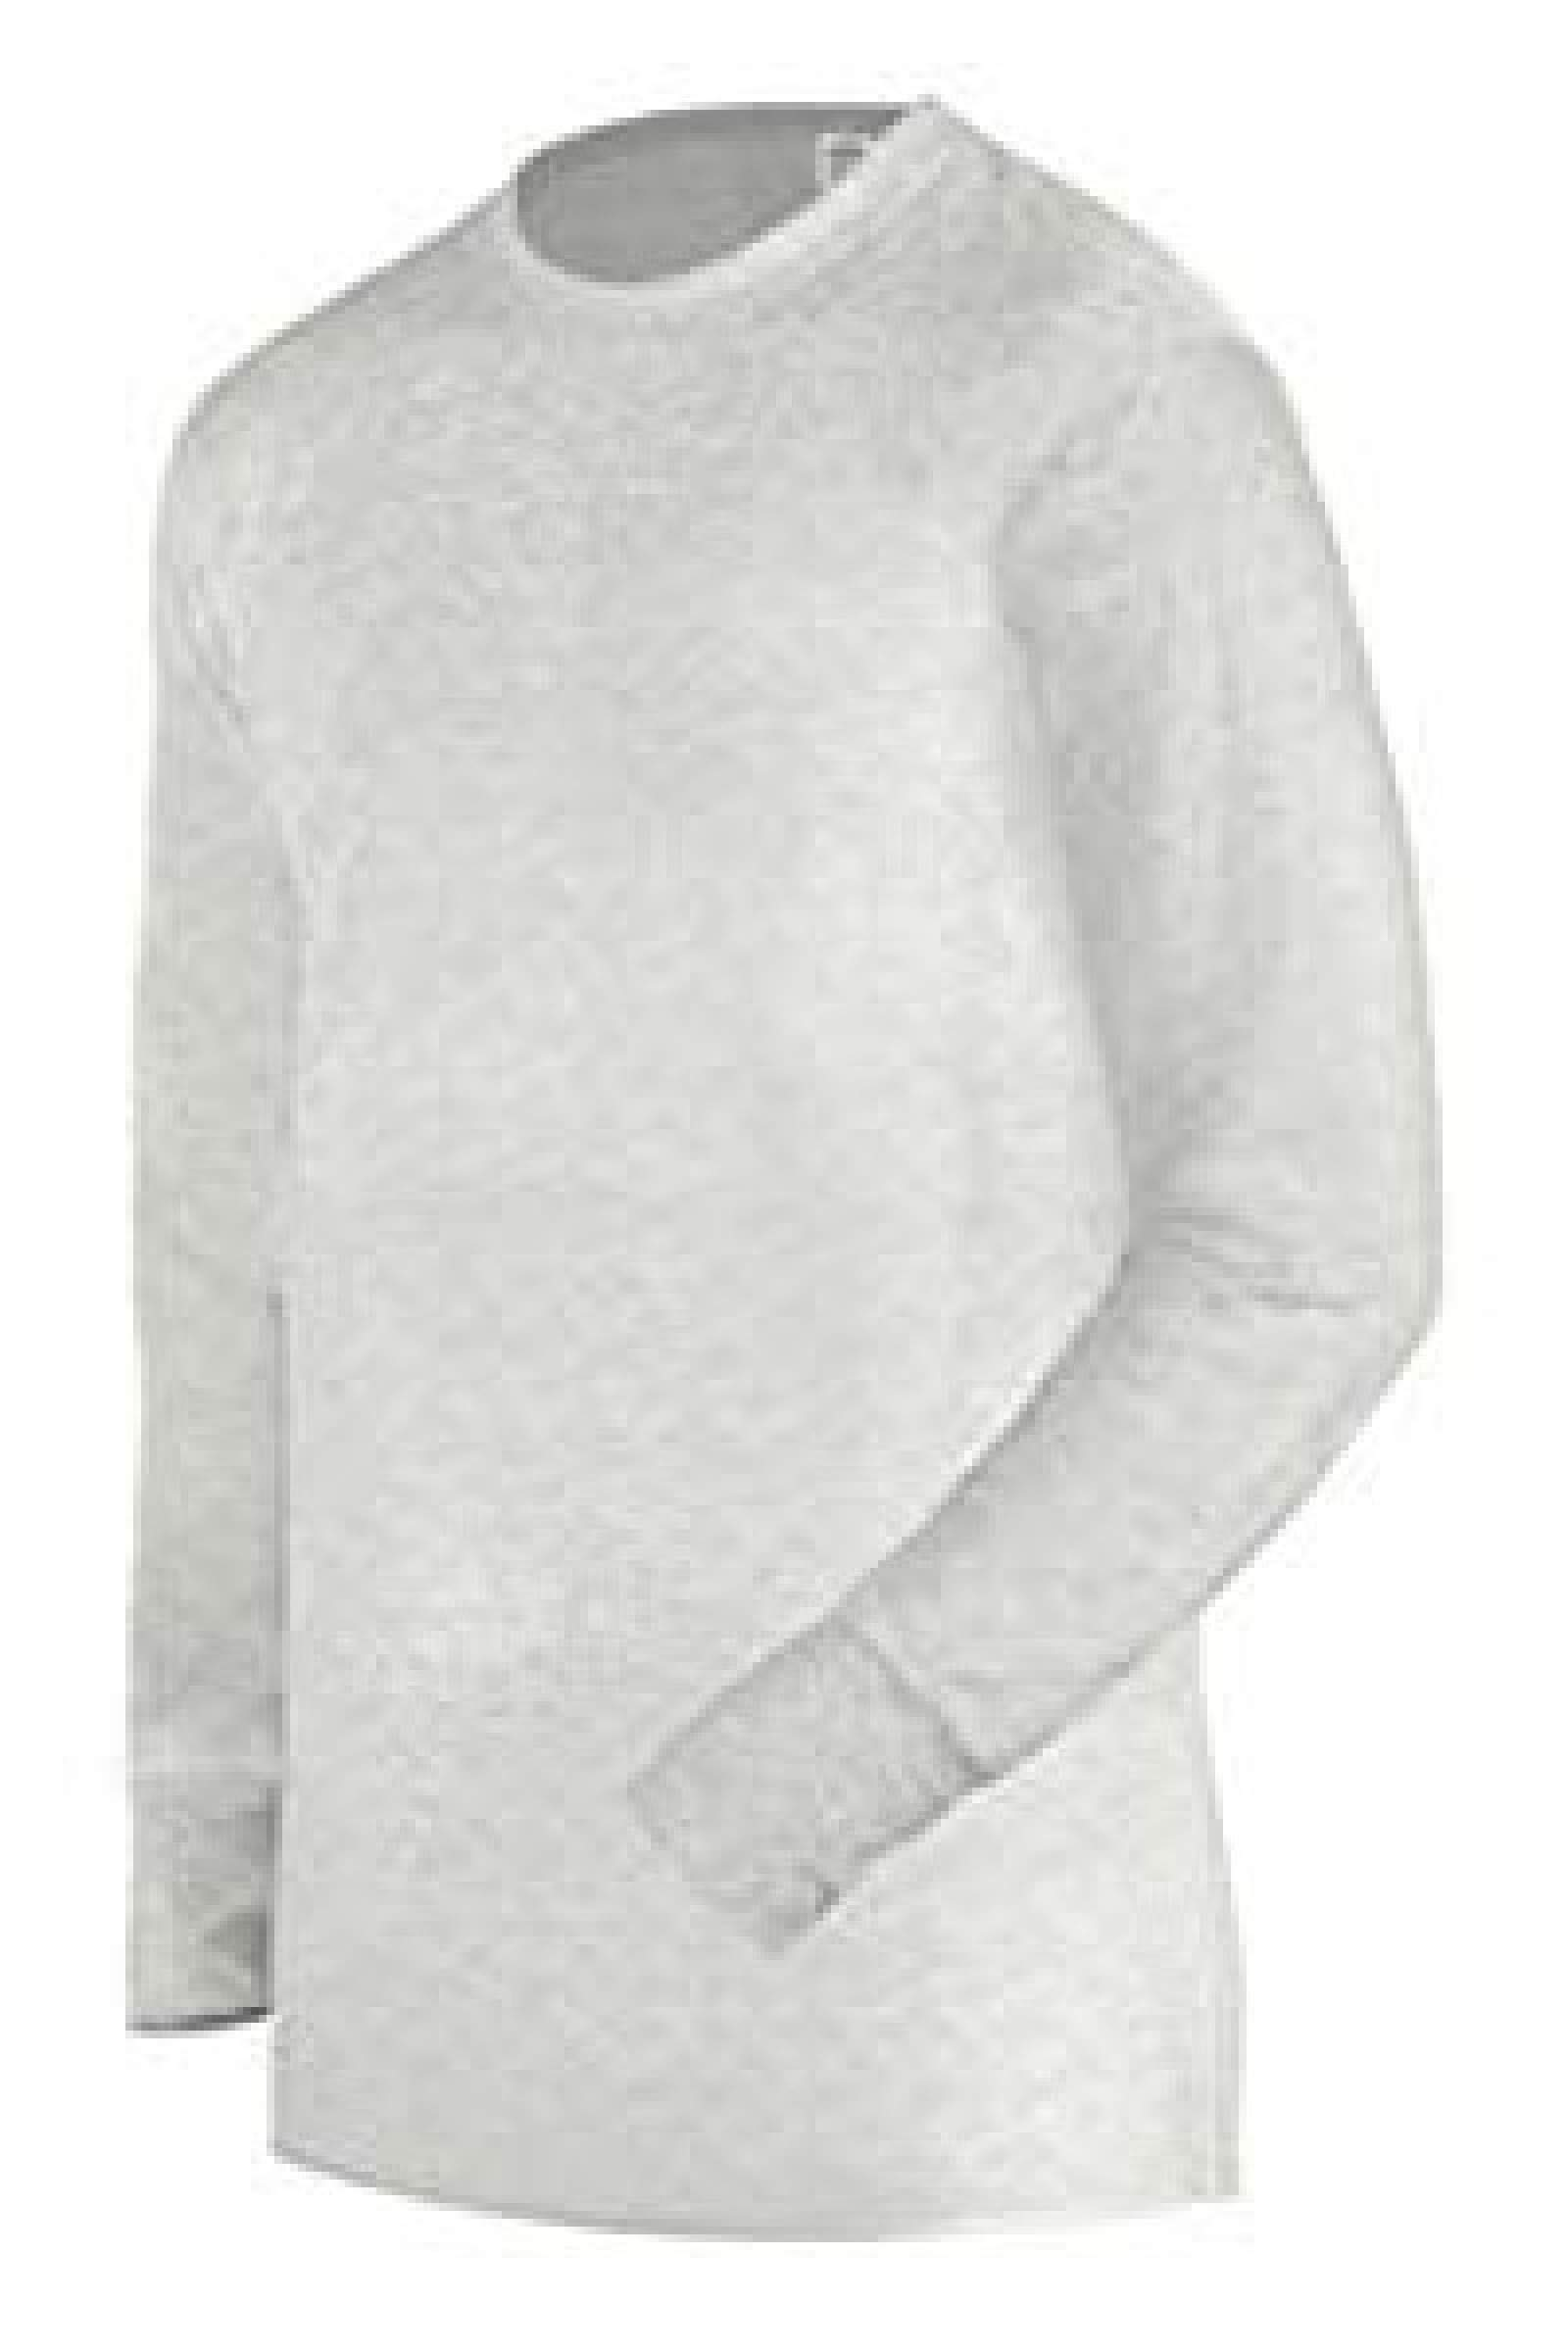 Duofold Men's Midweight Thermal Crew, White,  Medium by Duofold